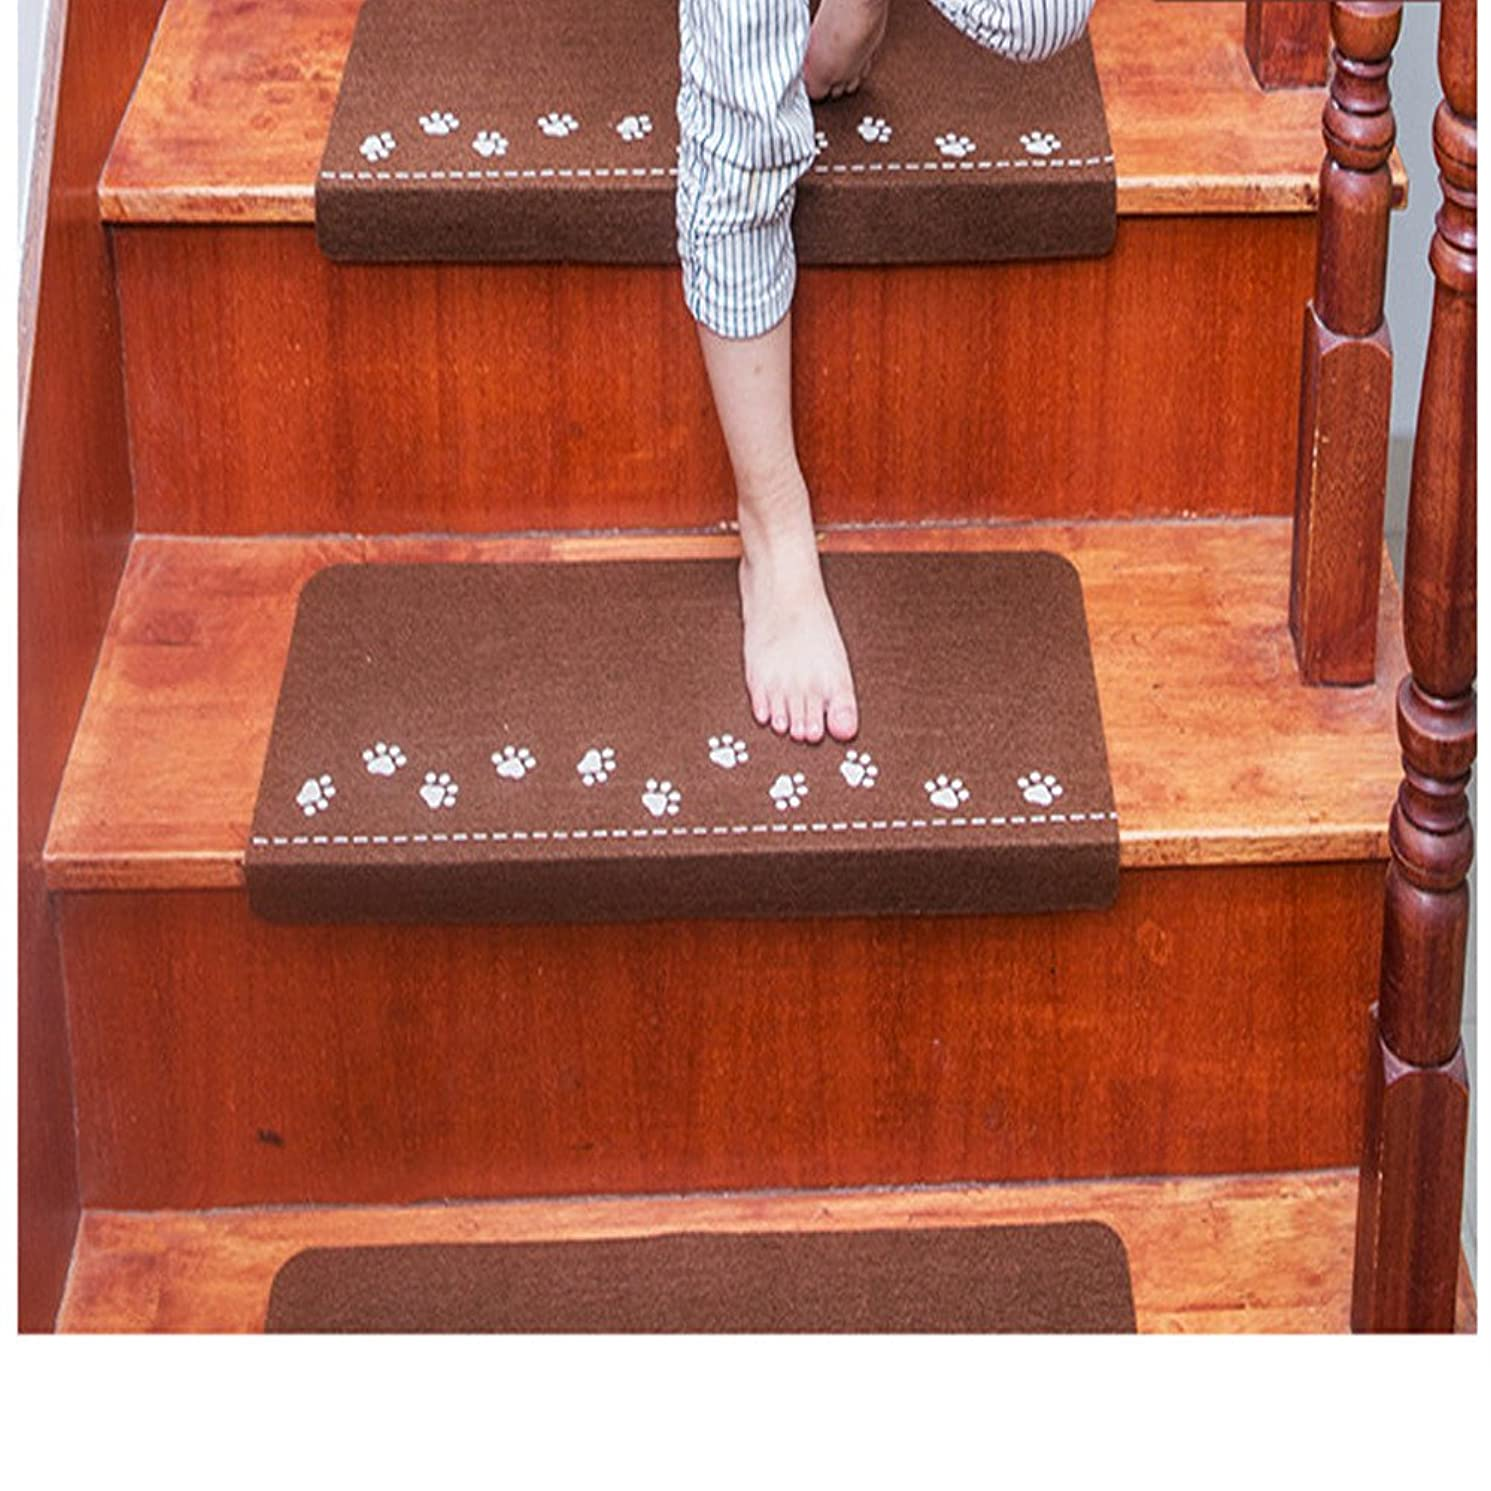 JIN+D Luminous Visual Stair Carpet Pad Anti-Skid Staircase Mats Safe Treads ,Soft for Household Solid Wood Stair, Glue-Free Self-Adhesive Non-Slip Stair Mat